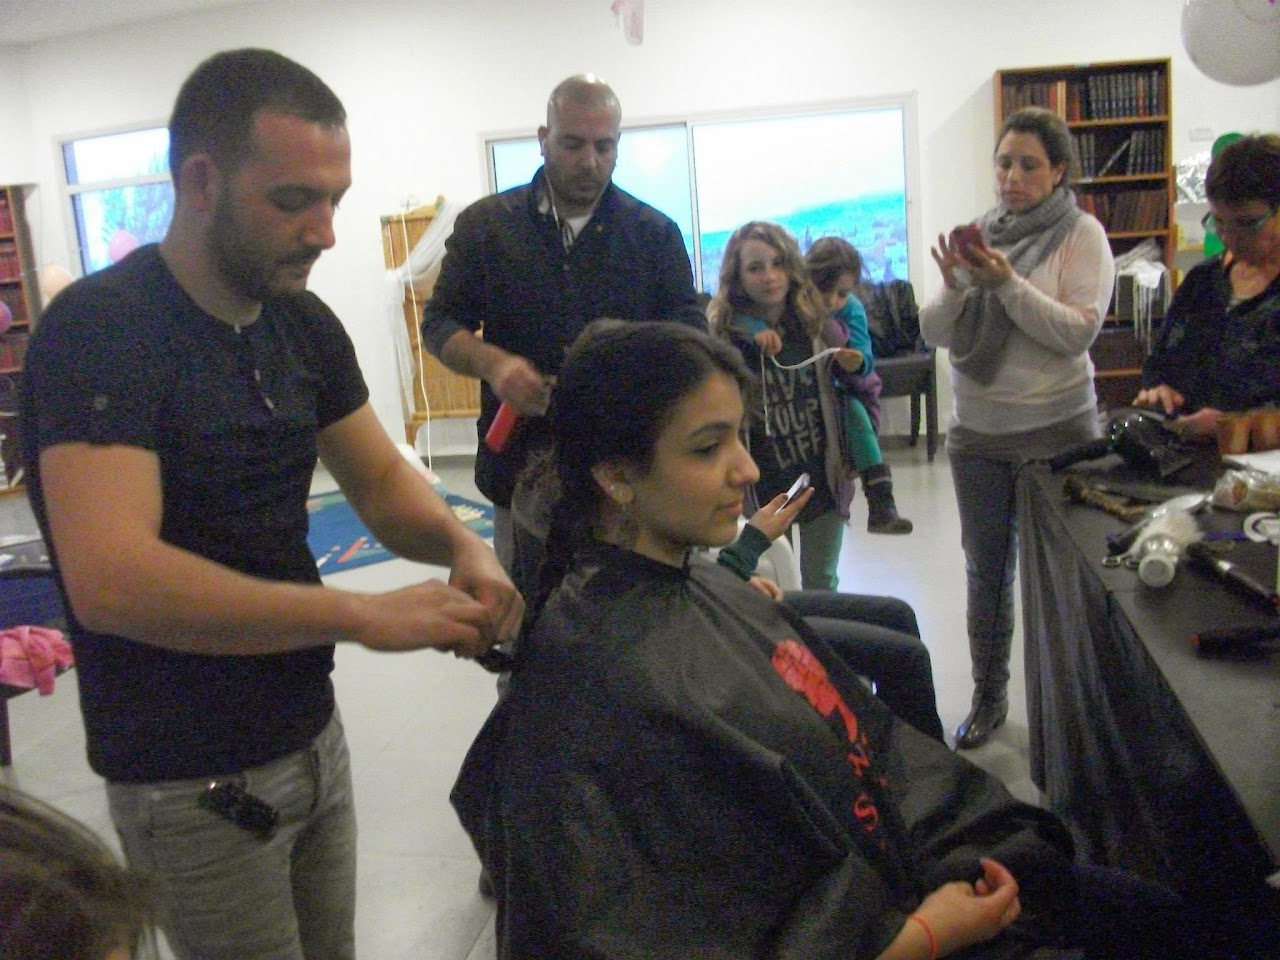 Donating hair for cancer patients 2014  - 1795804_539677509481880_218471230_o.jpg